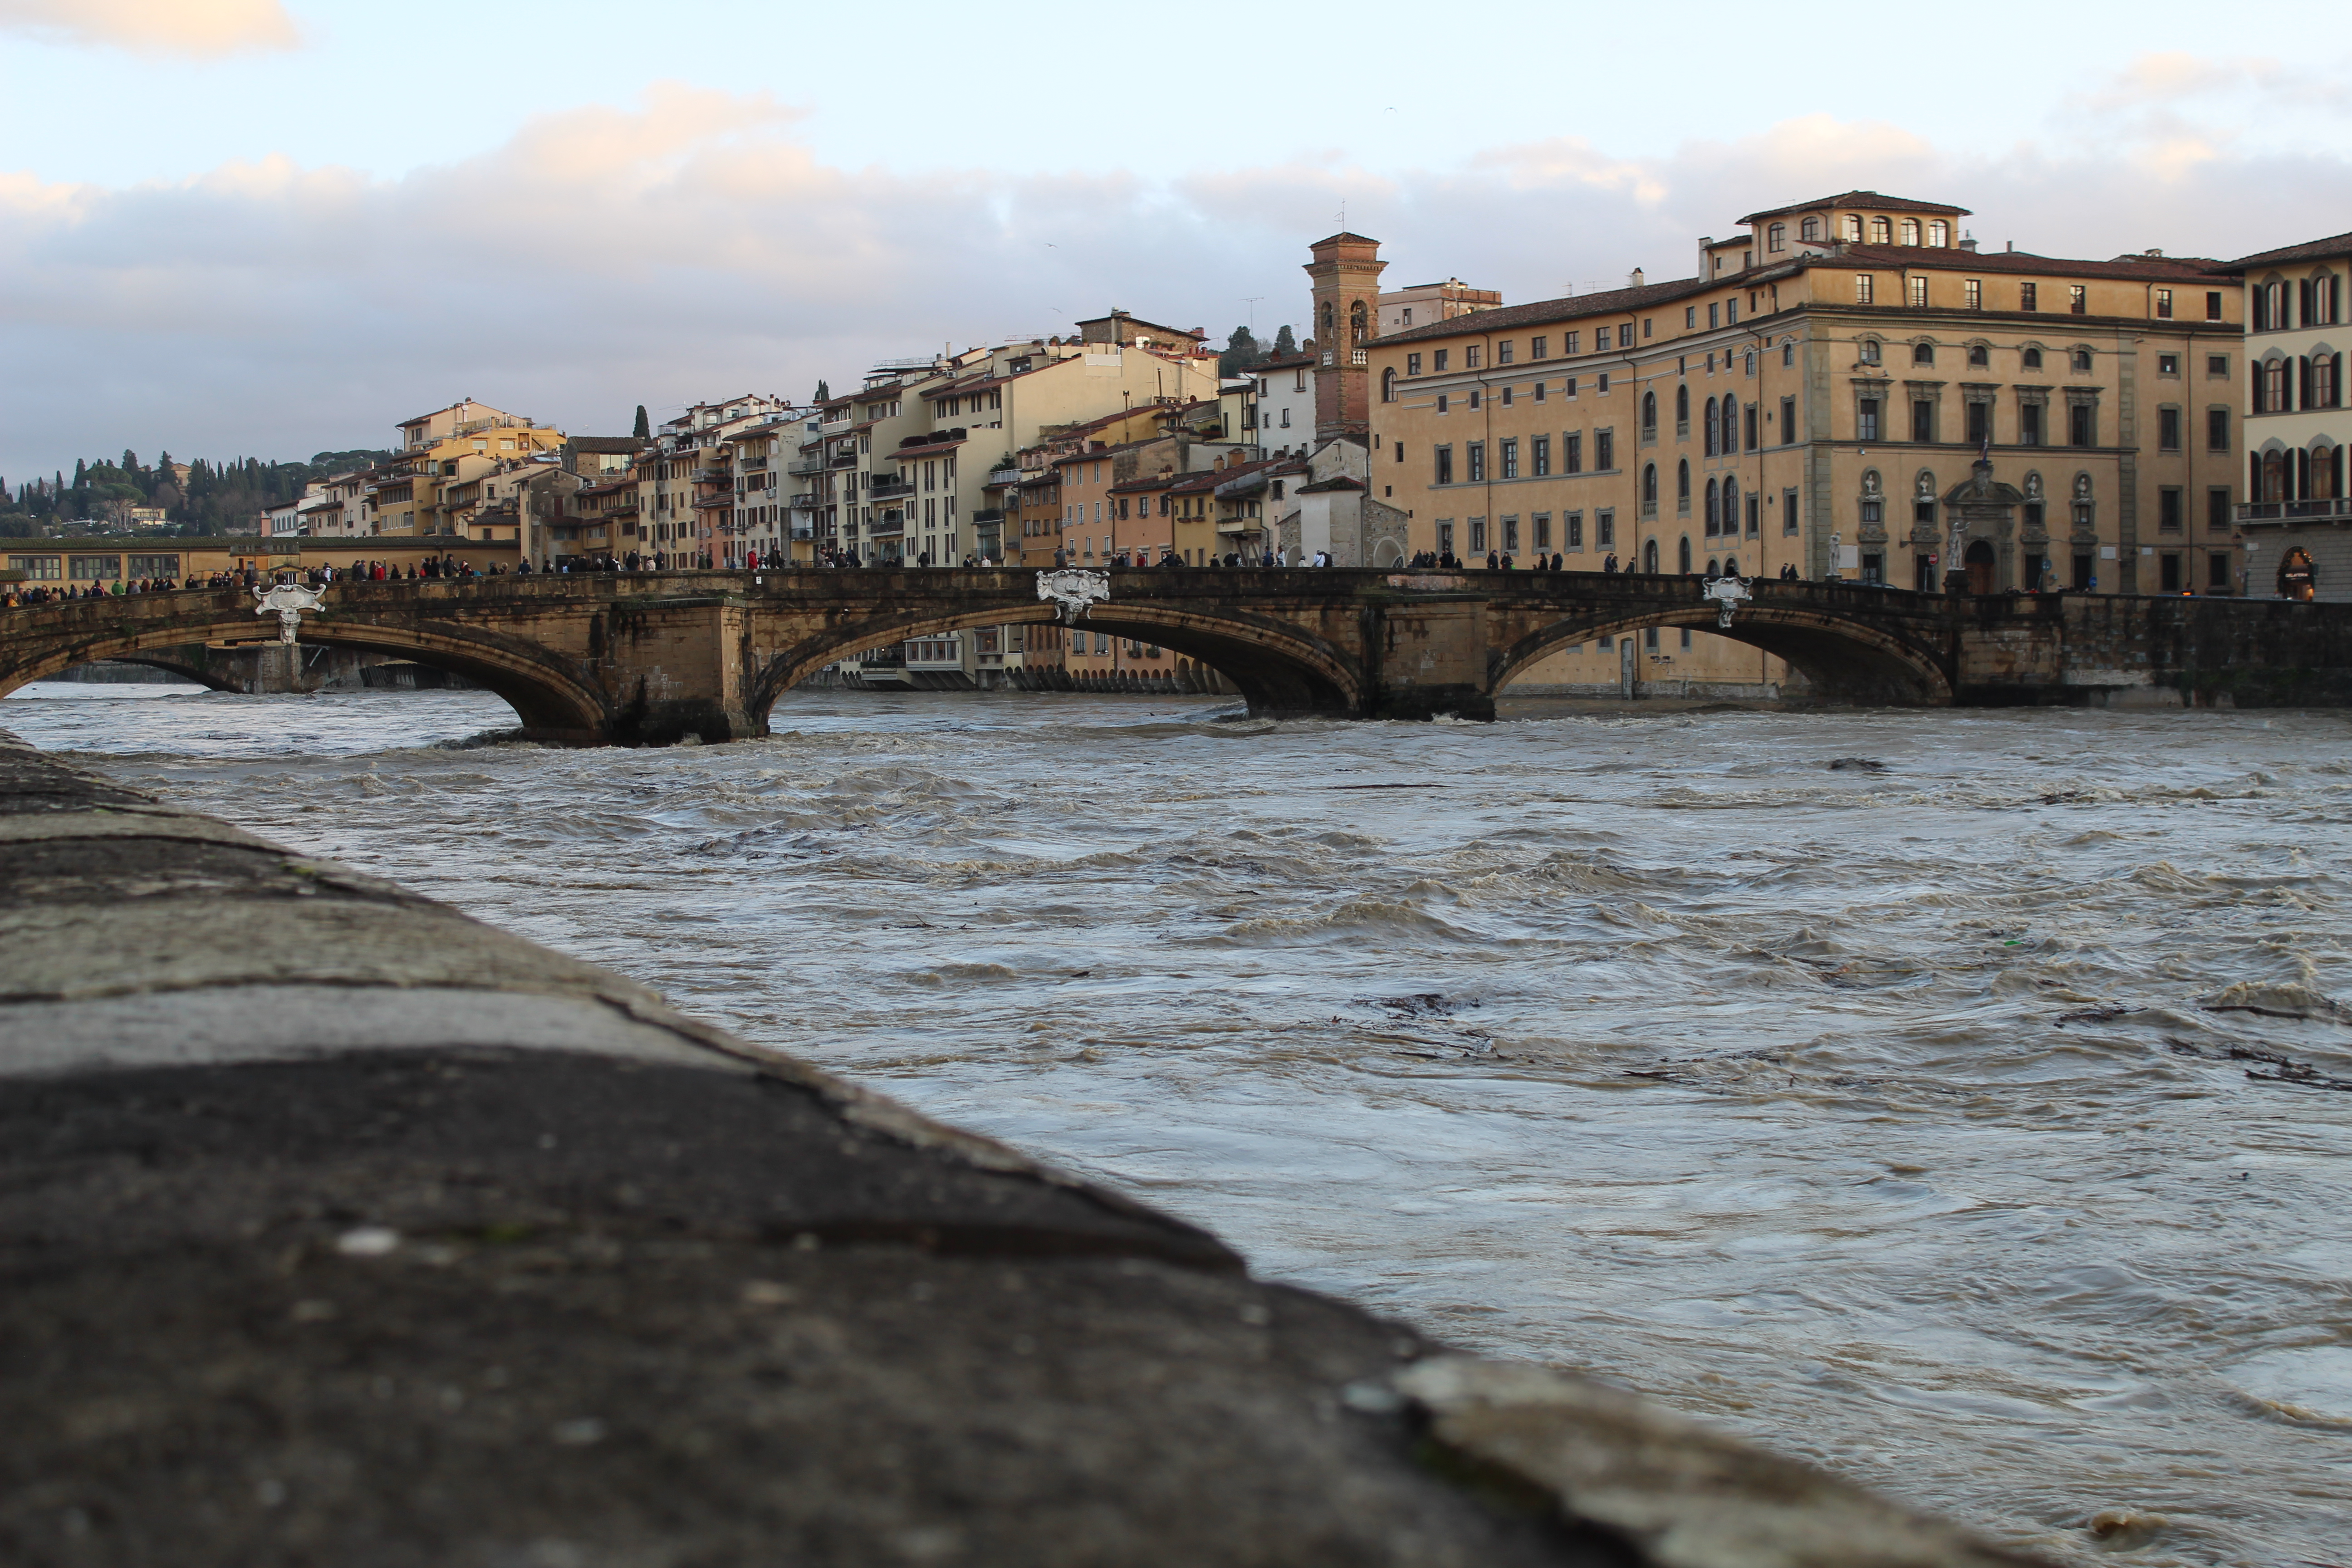 Arno River (winter)